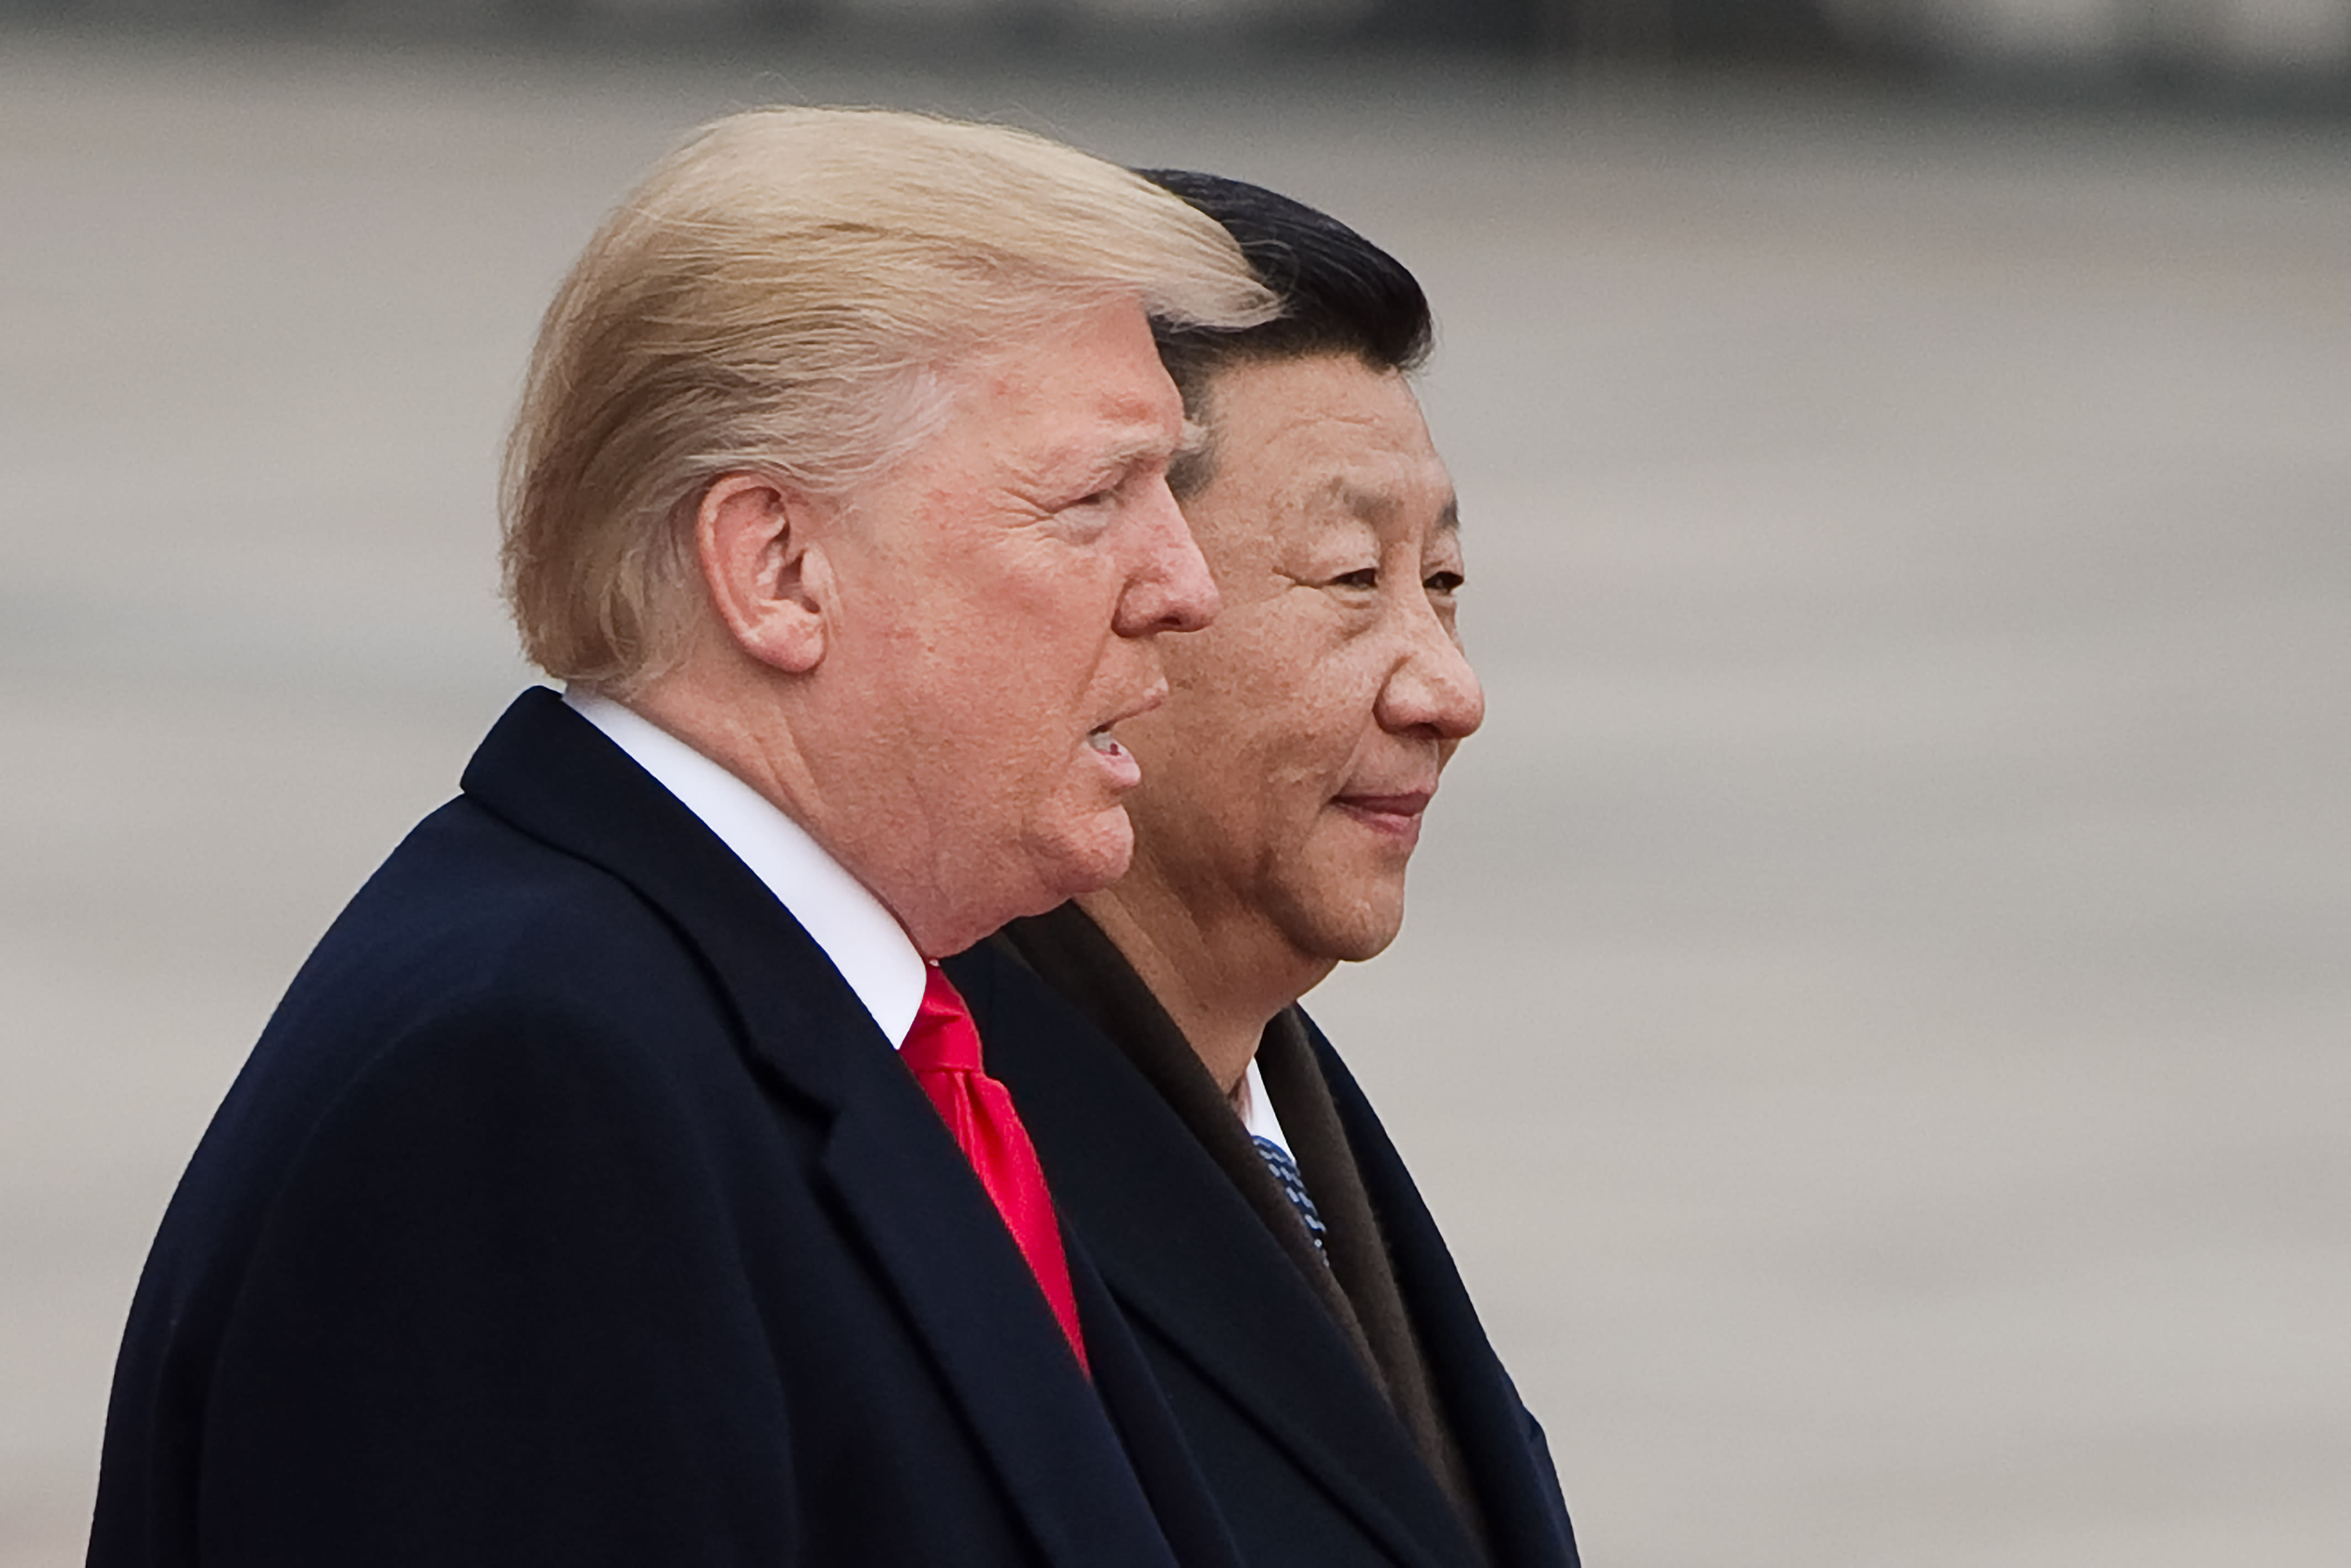 Wall Street is becoming convinced the trade war is here to stay and will only get worse